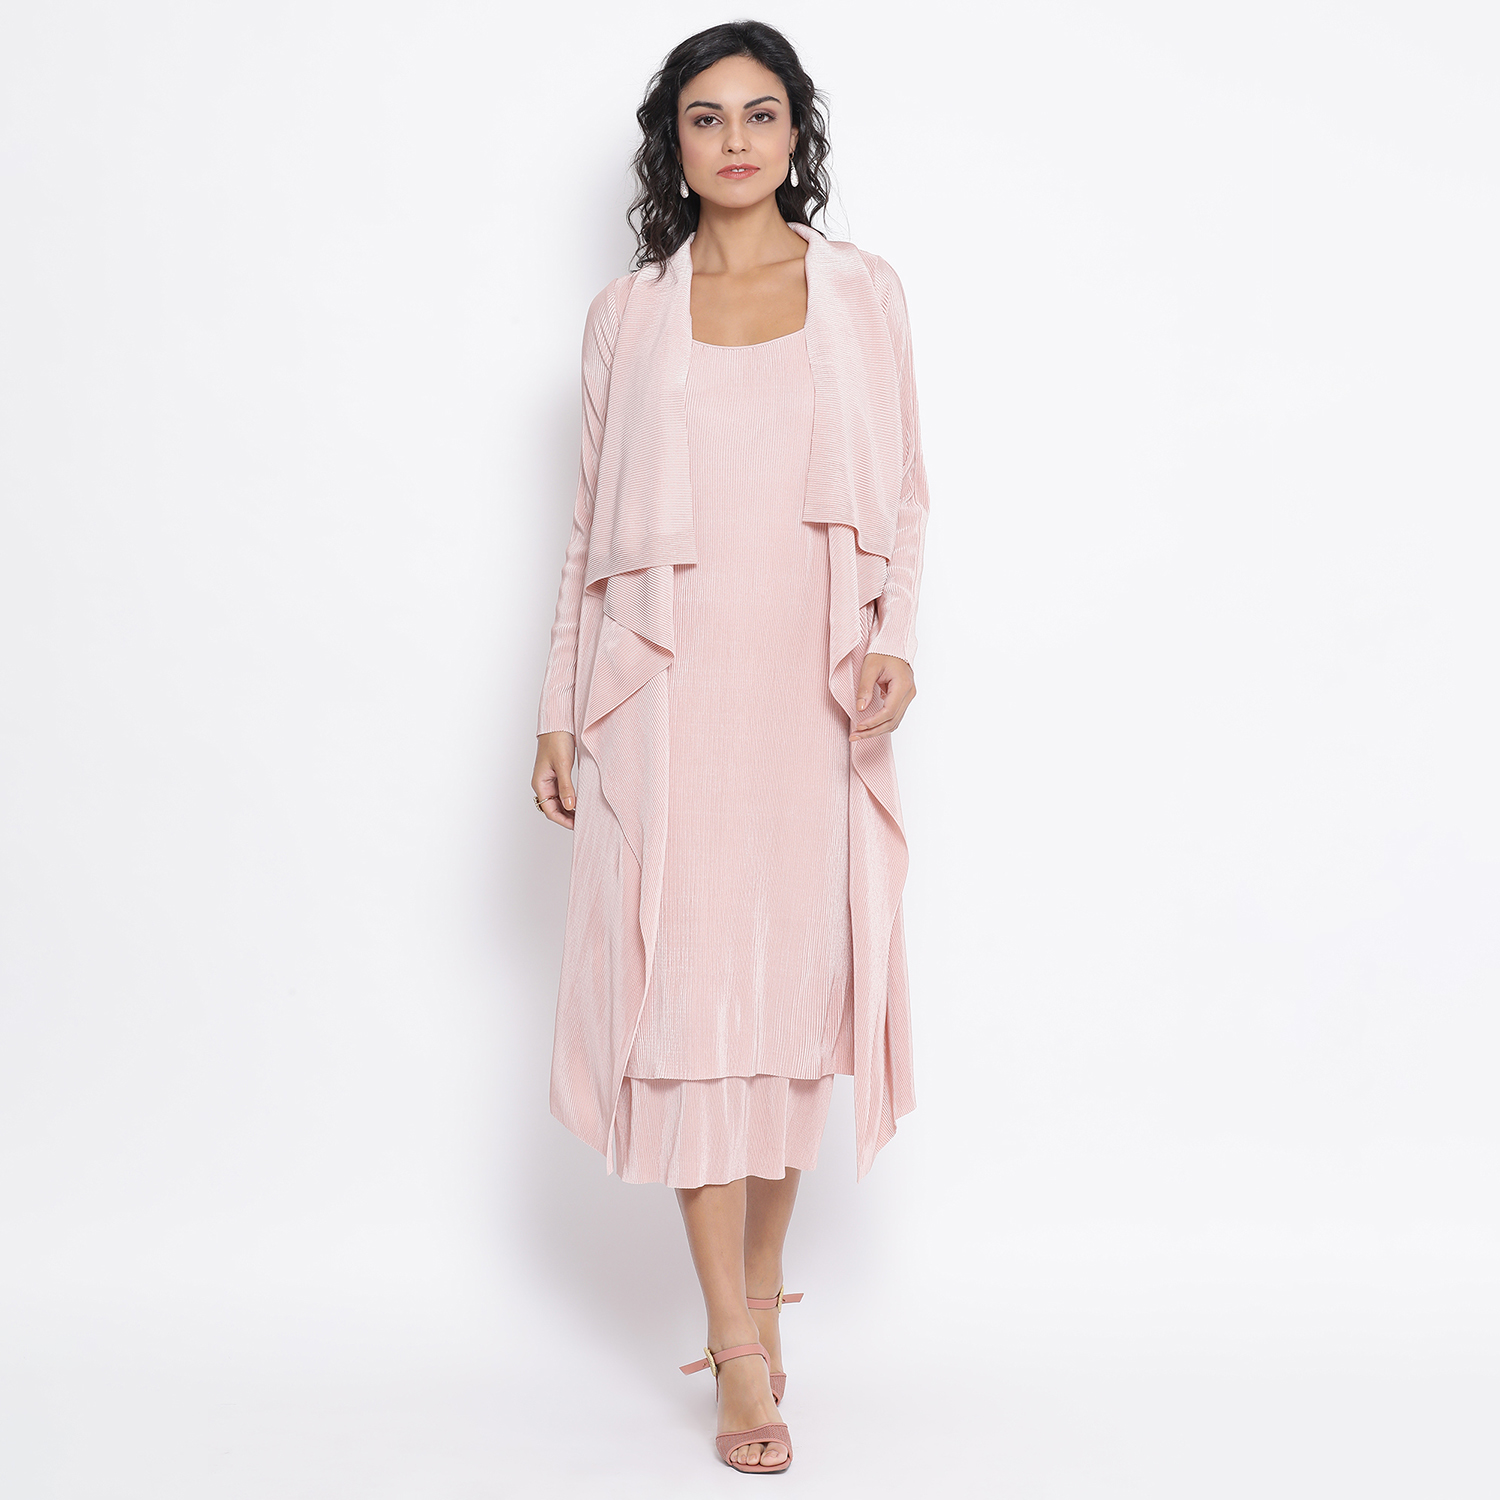 Buy Pink Texture Drape Personable Jacket For Women